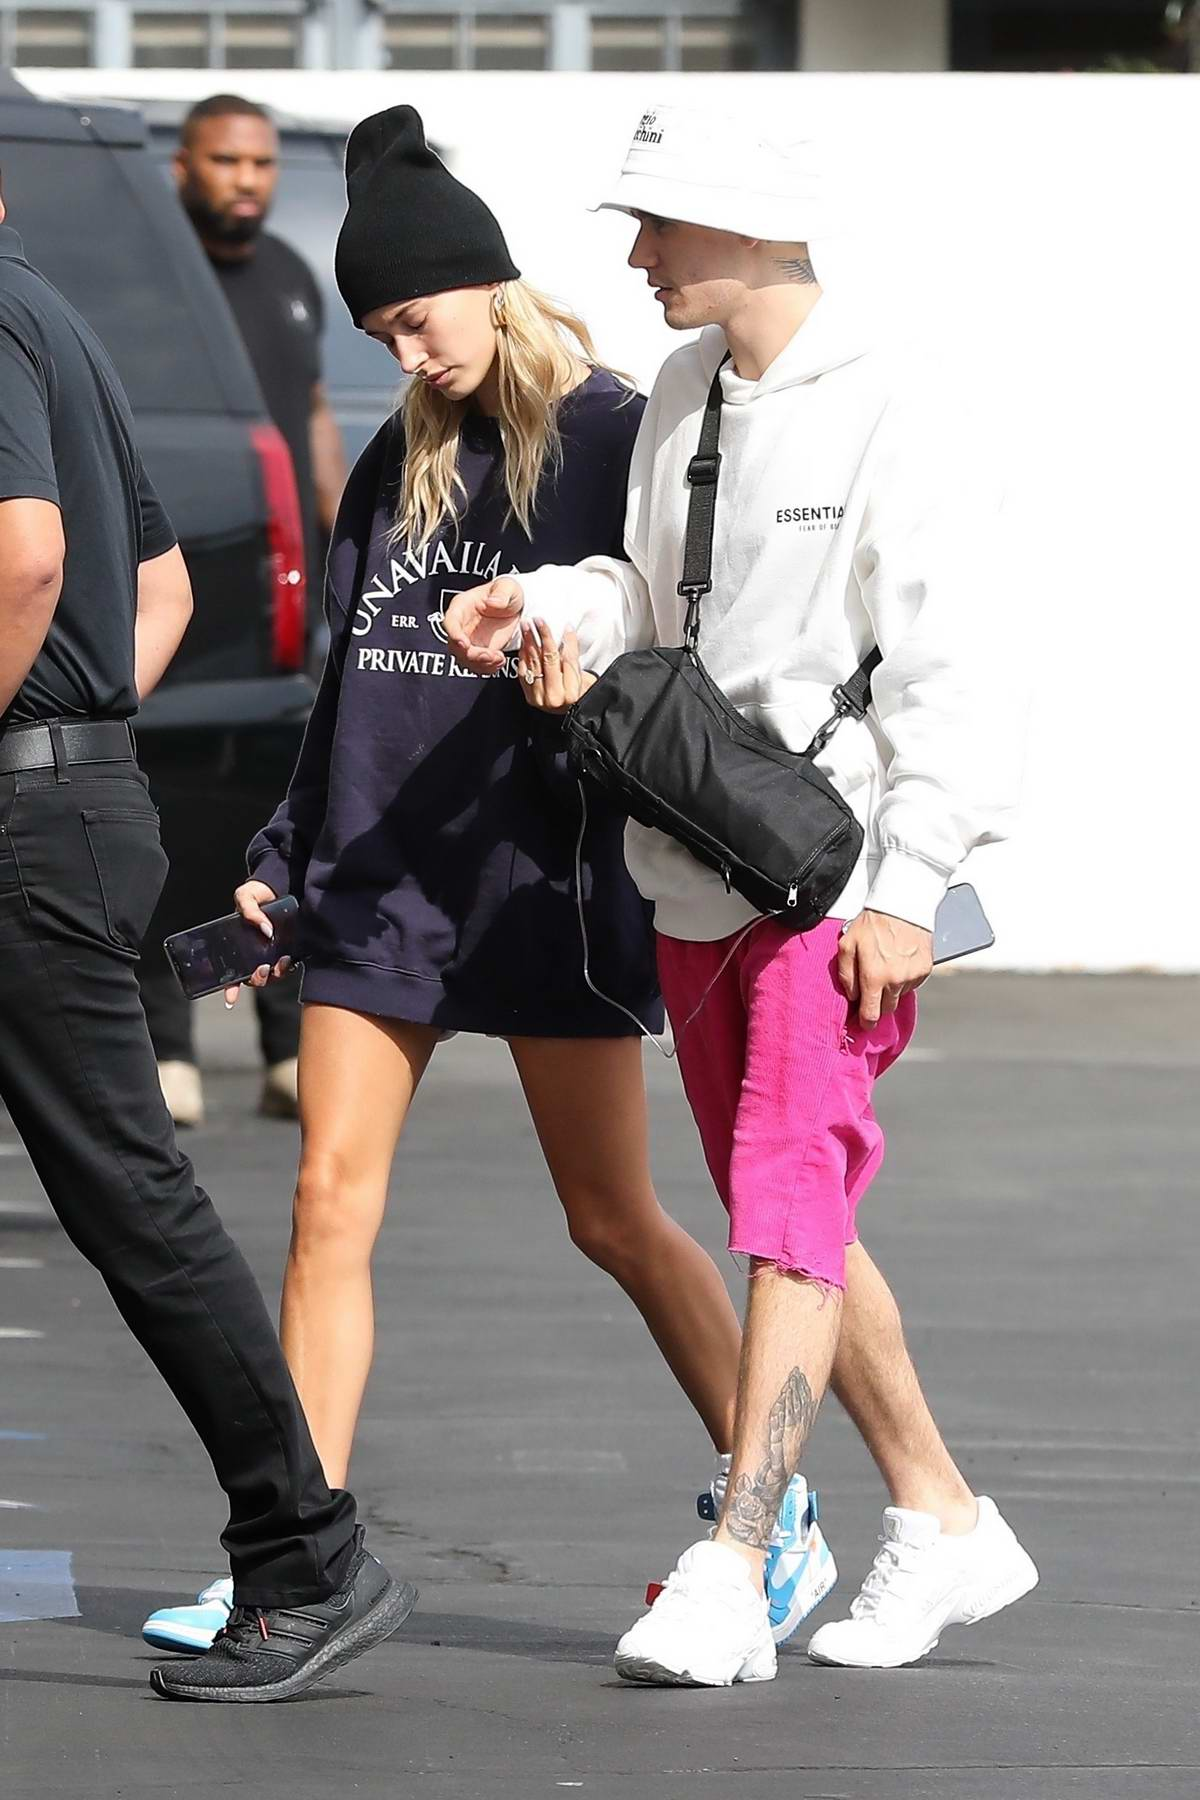 Hailey Baldwin And Justin Bieber Arrive To The Movies At Ipic Movie Theater In Westwood California